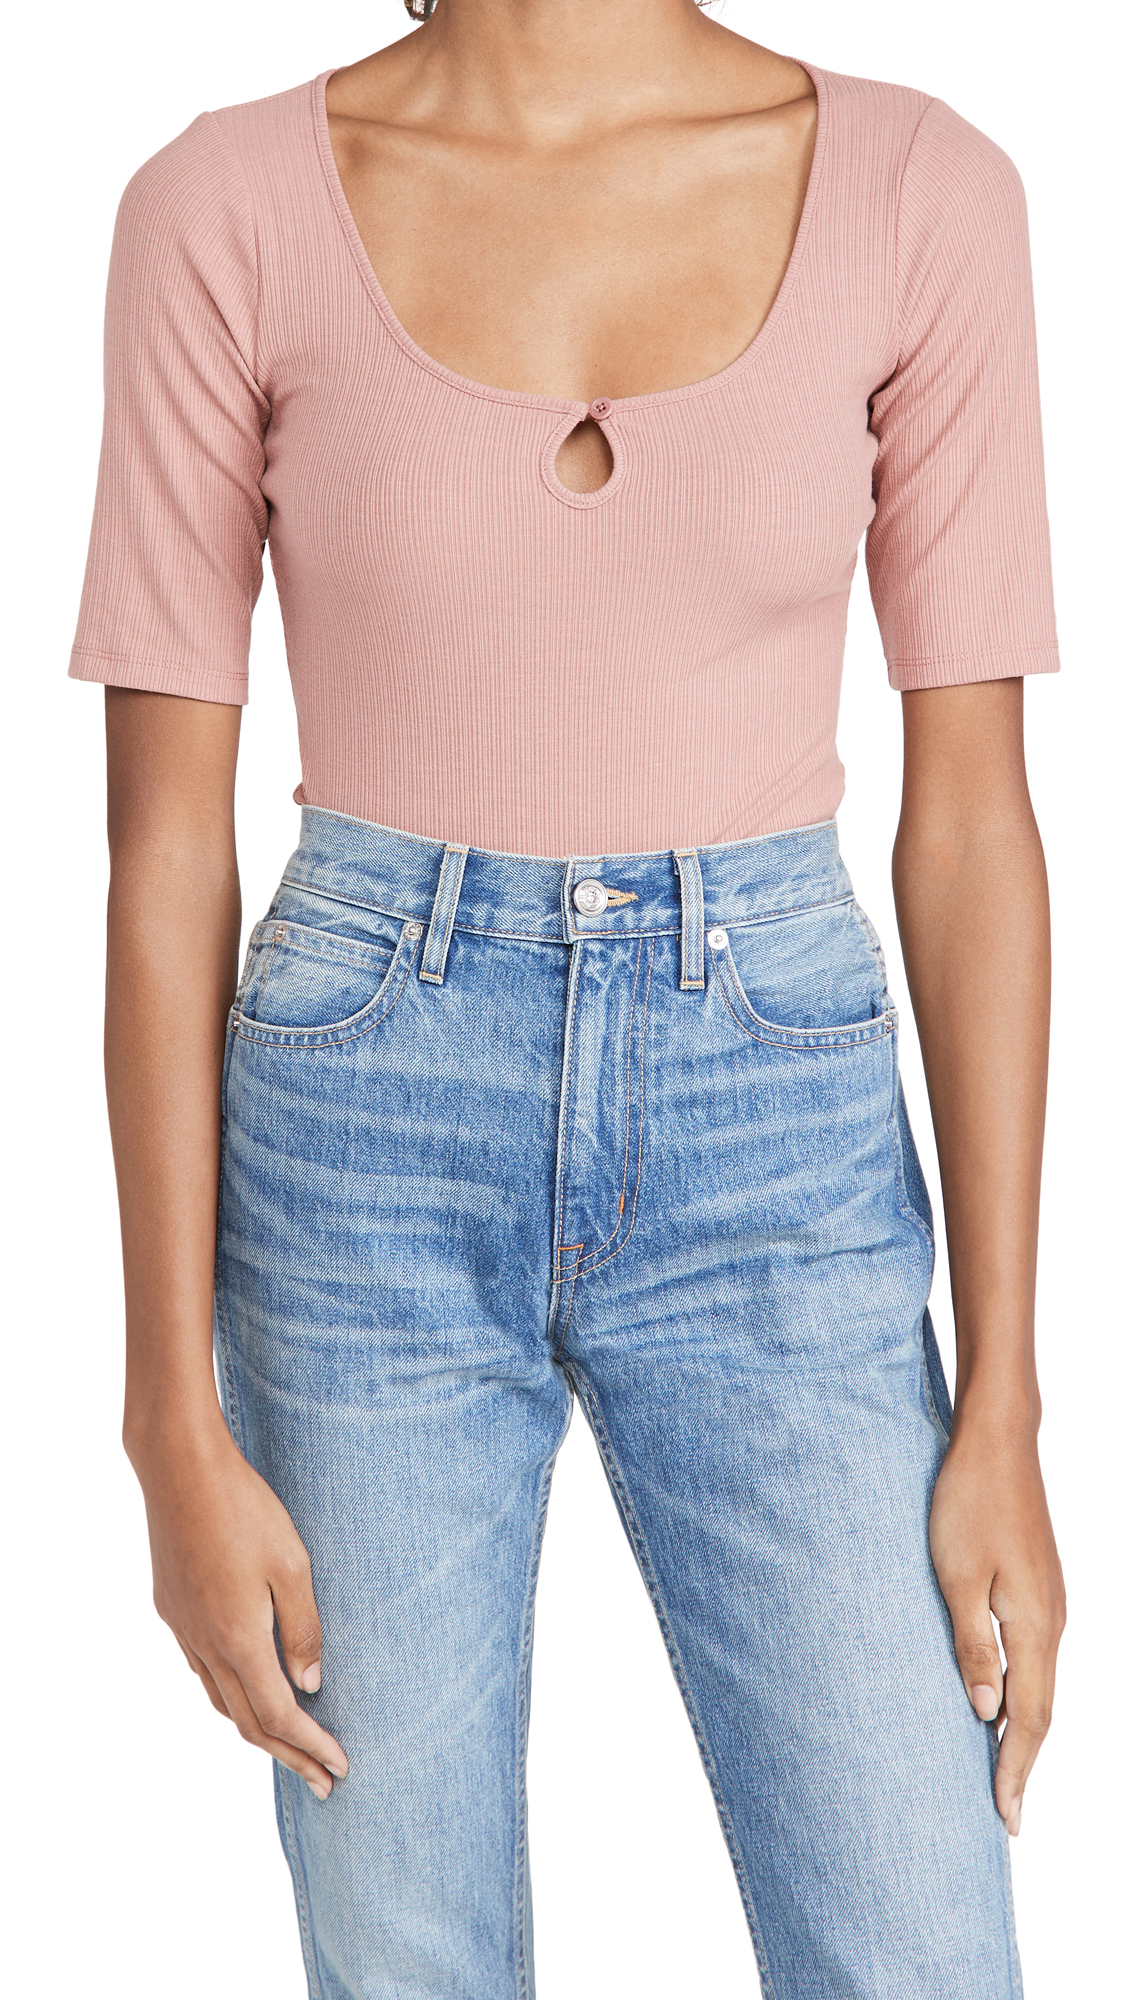 Reformation Kourtney Top